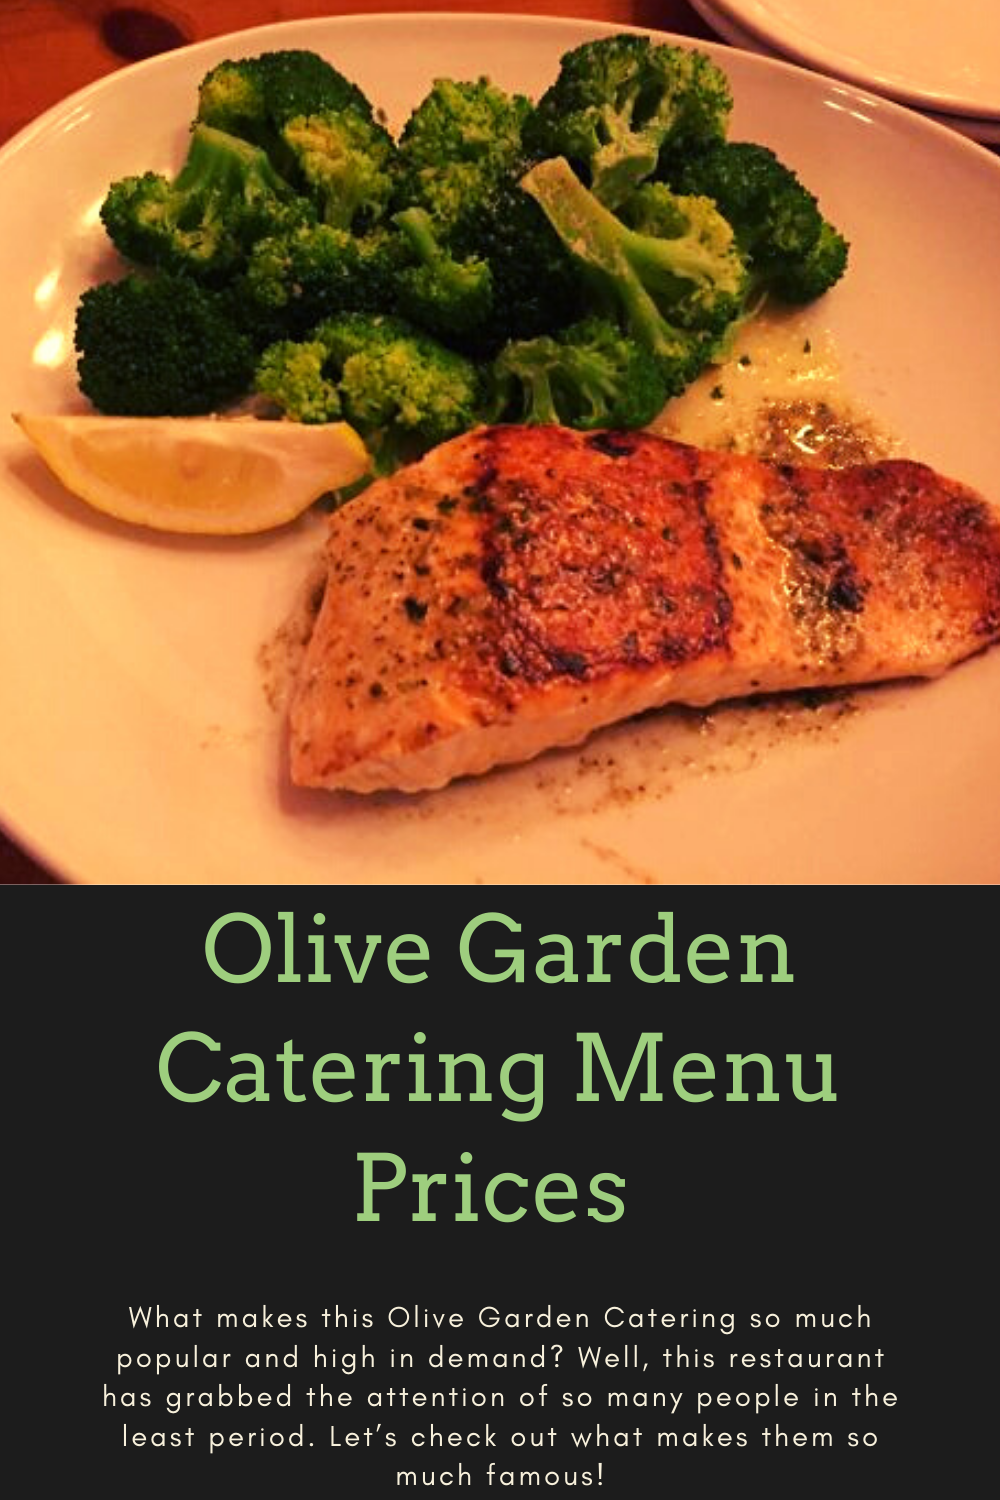 Olive Garden Catering Menu Prices & Reviews in 2020